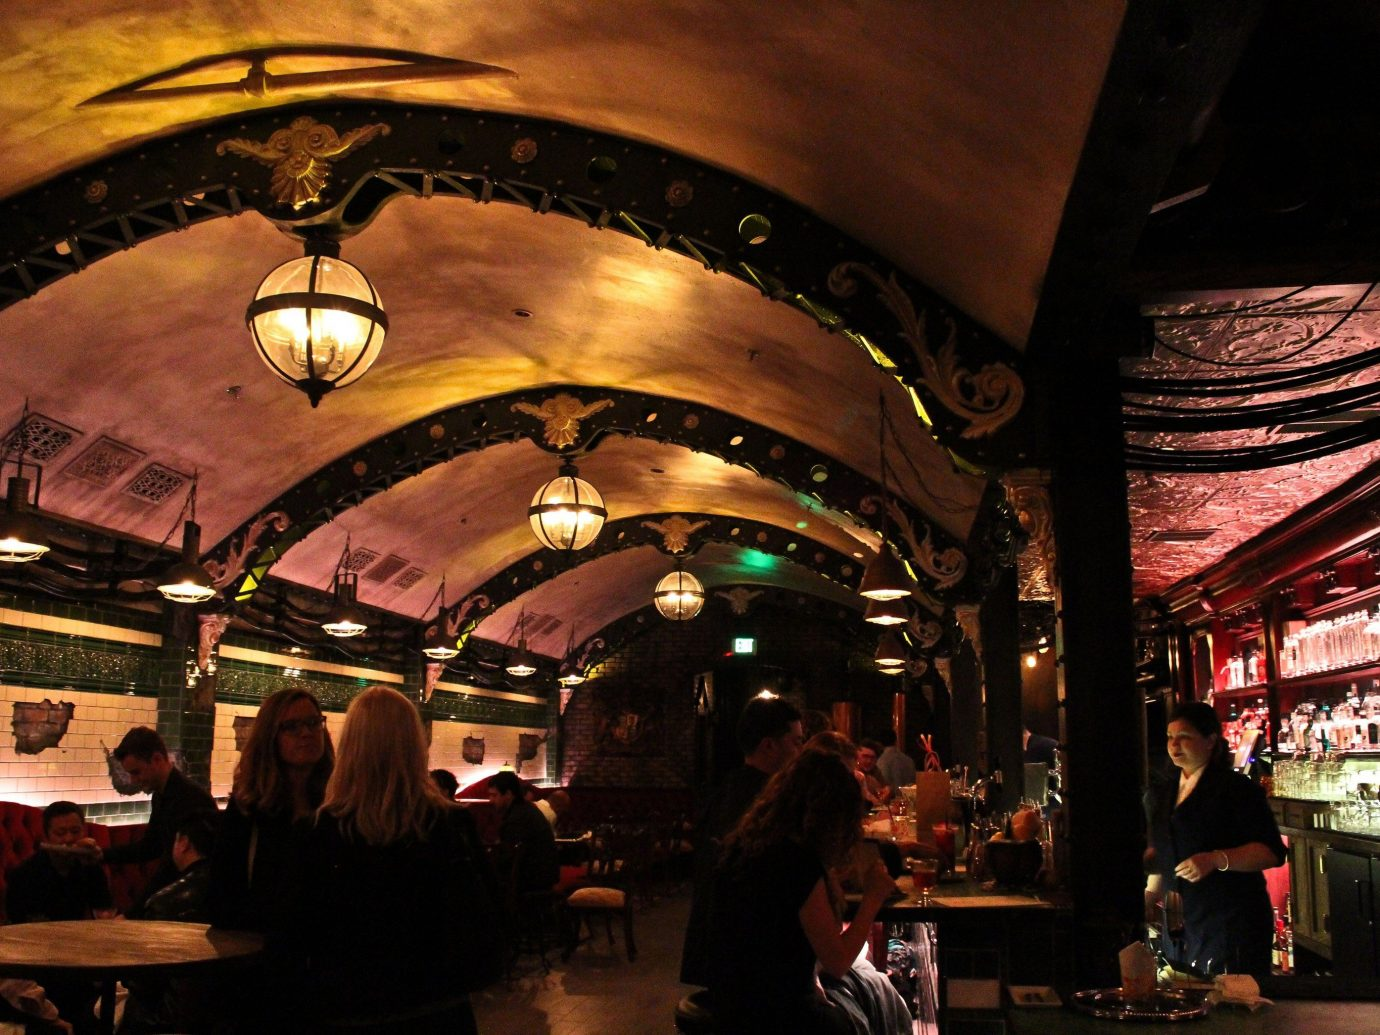 Trip Ideas person indoor people City night ceiling Bar restaurant market several